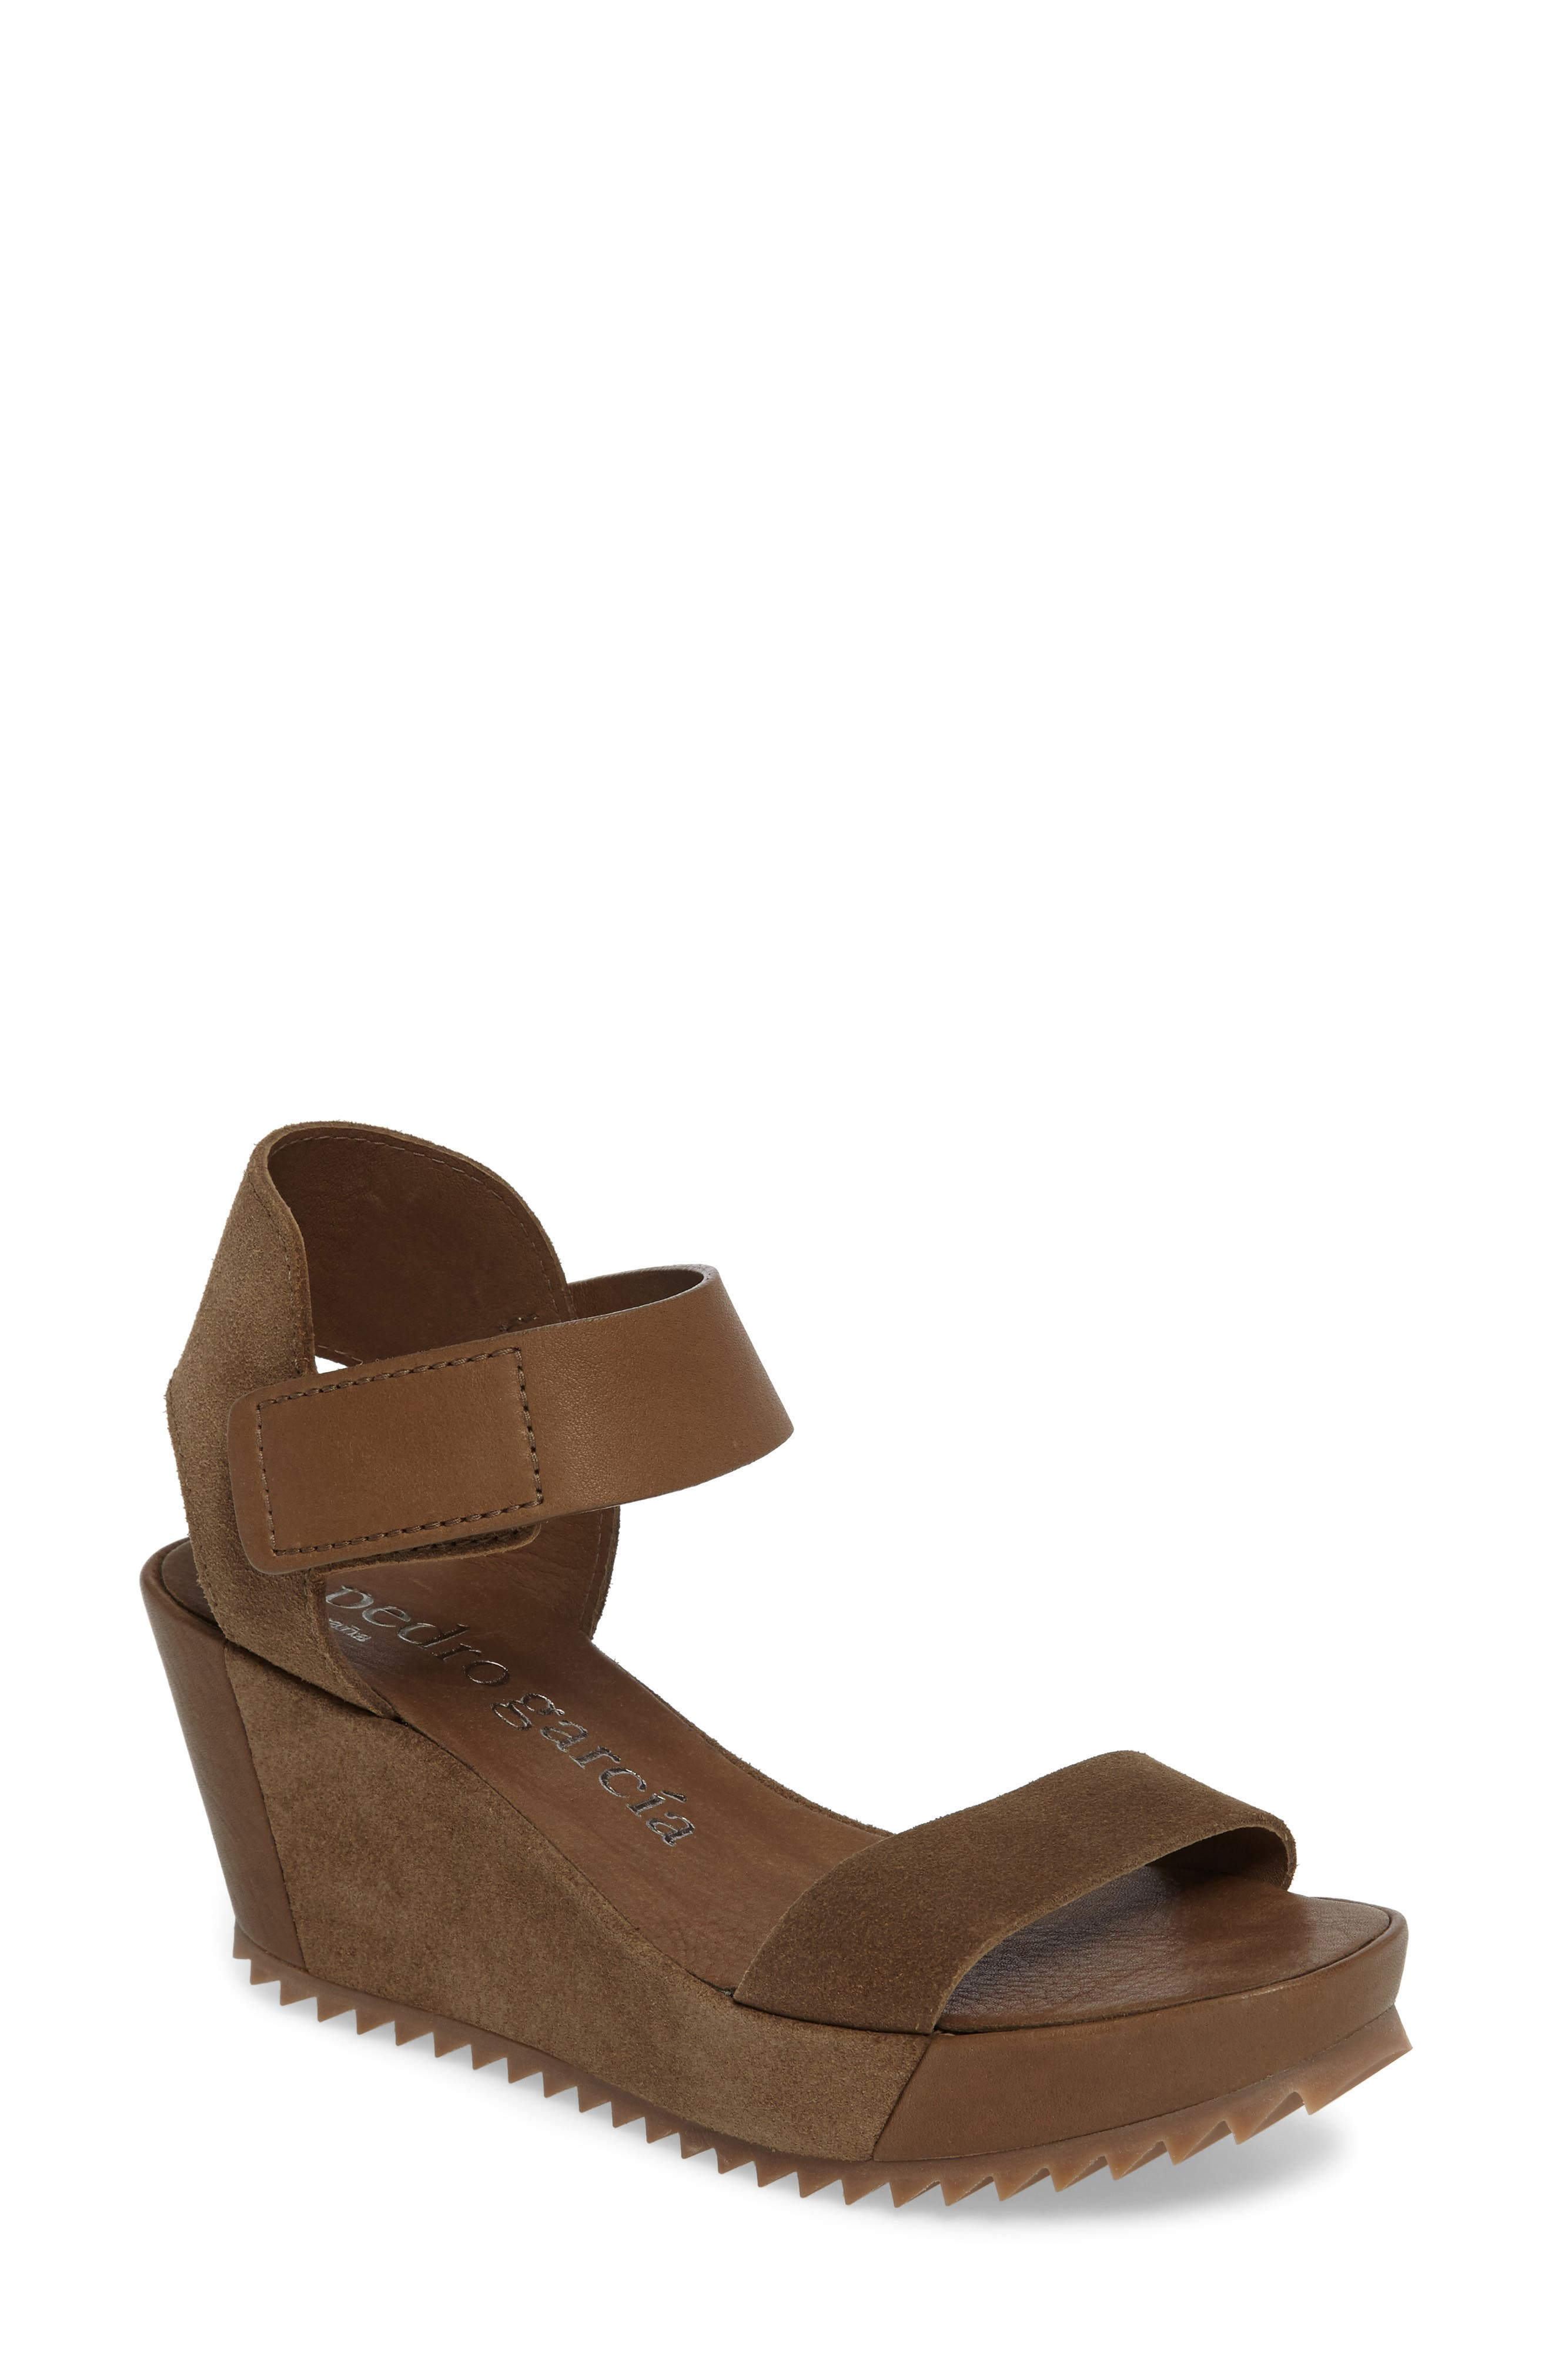 Francesca Wedge Sandal,                         Main,                         color, 250